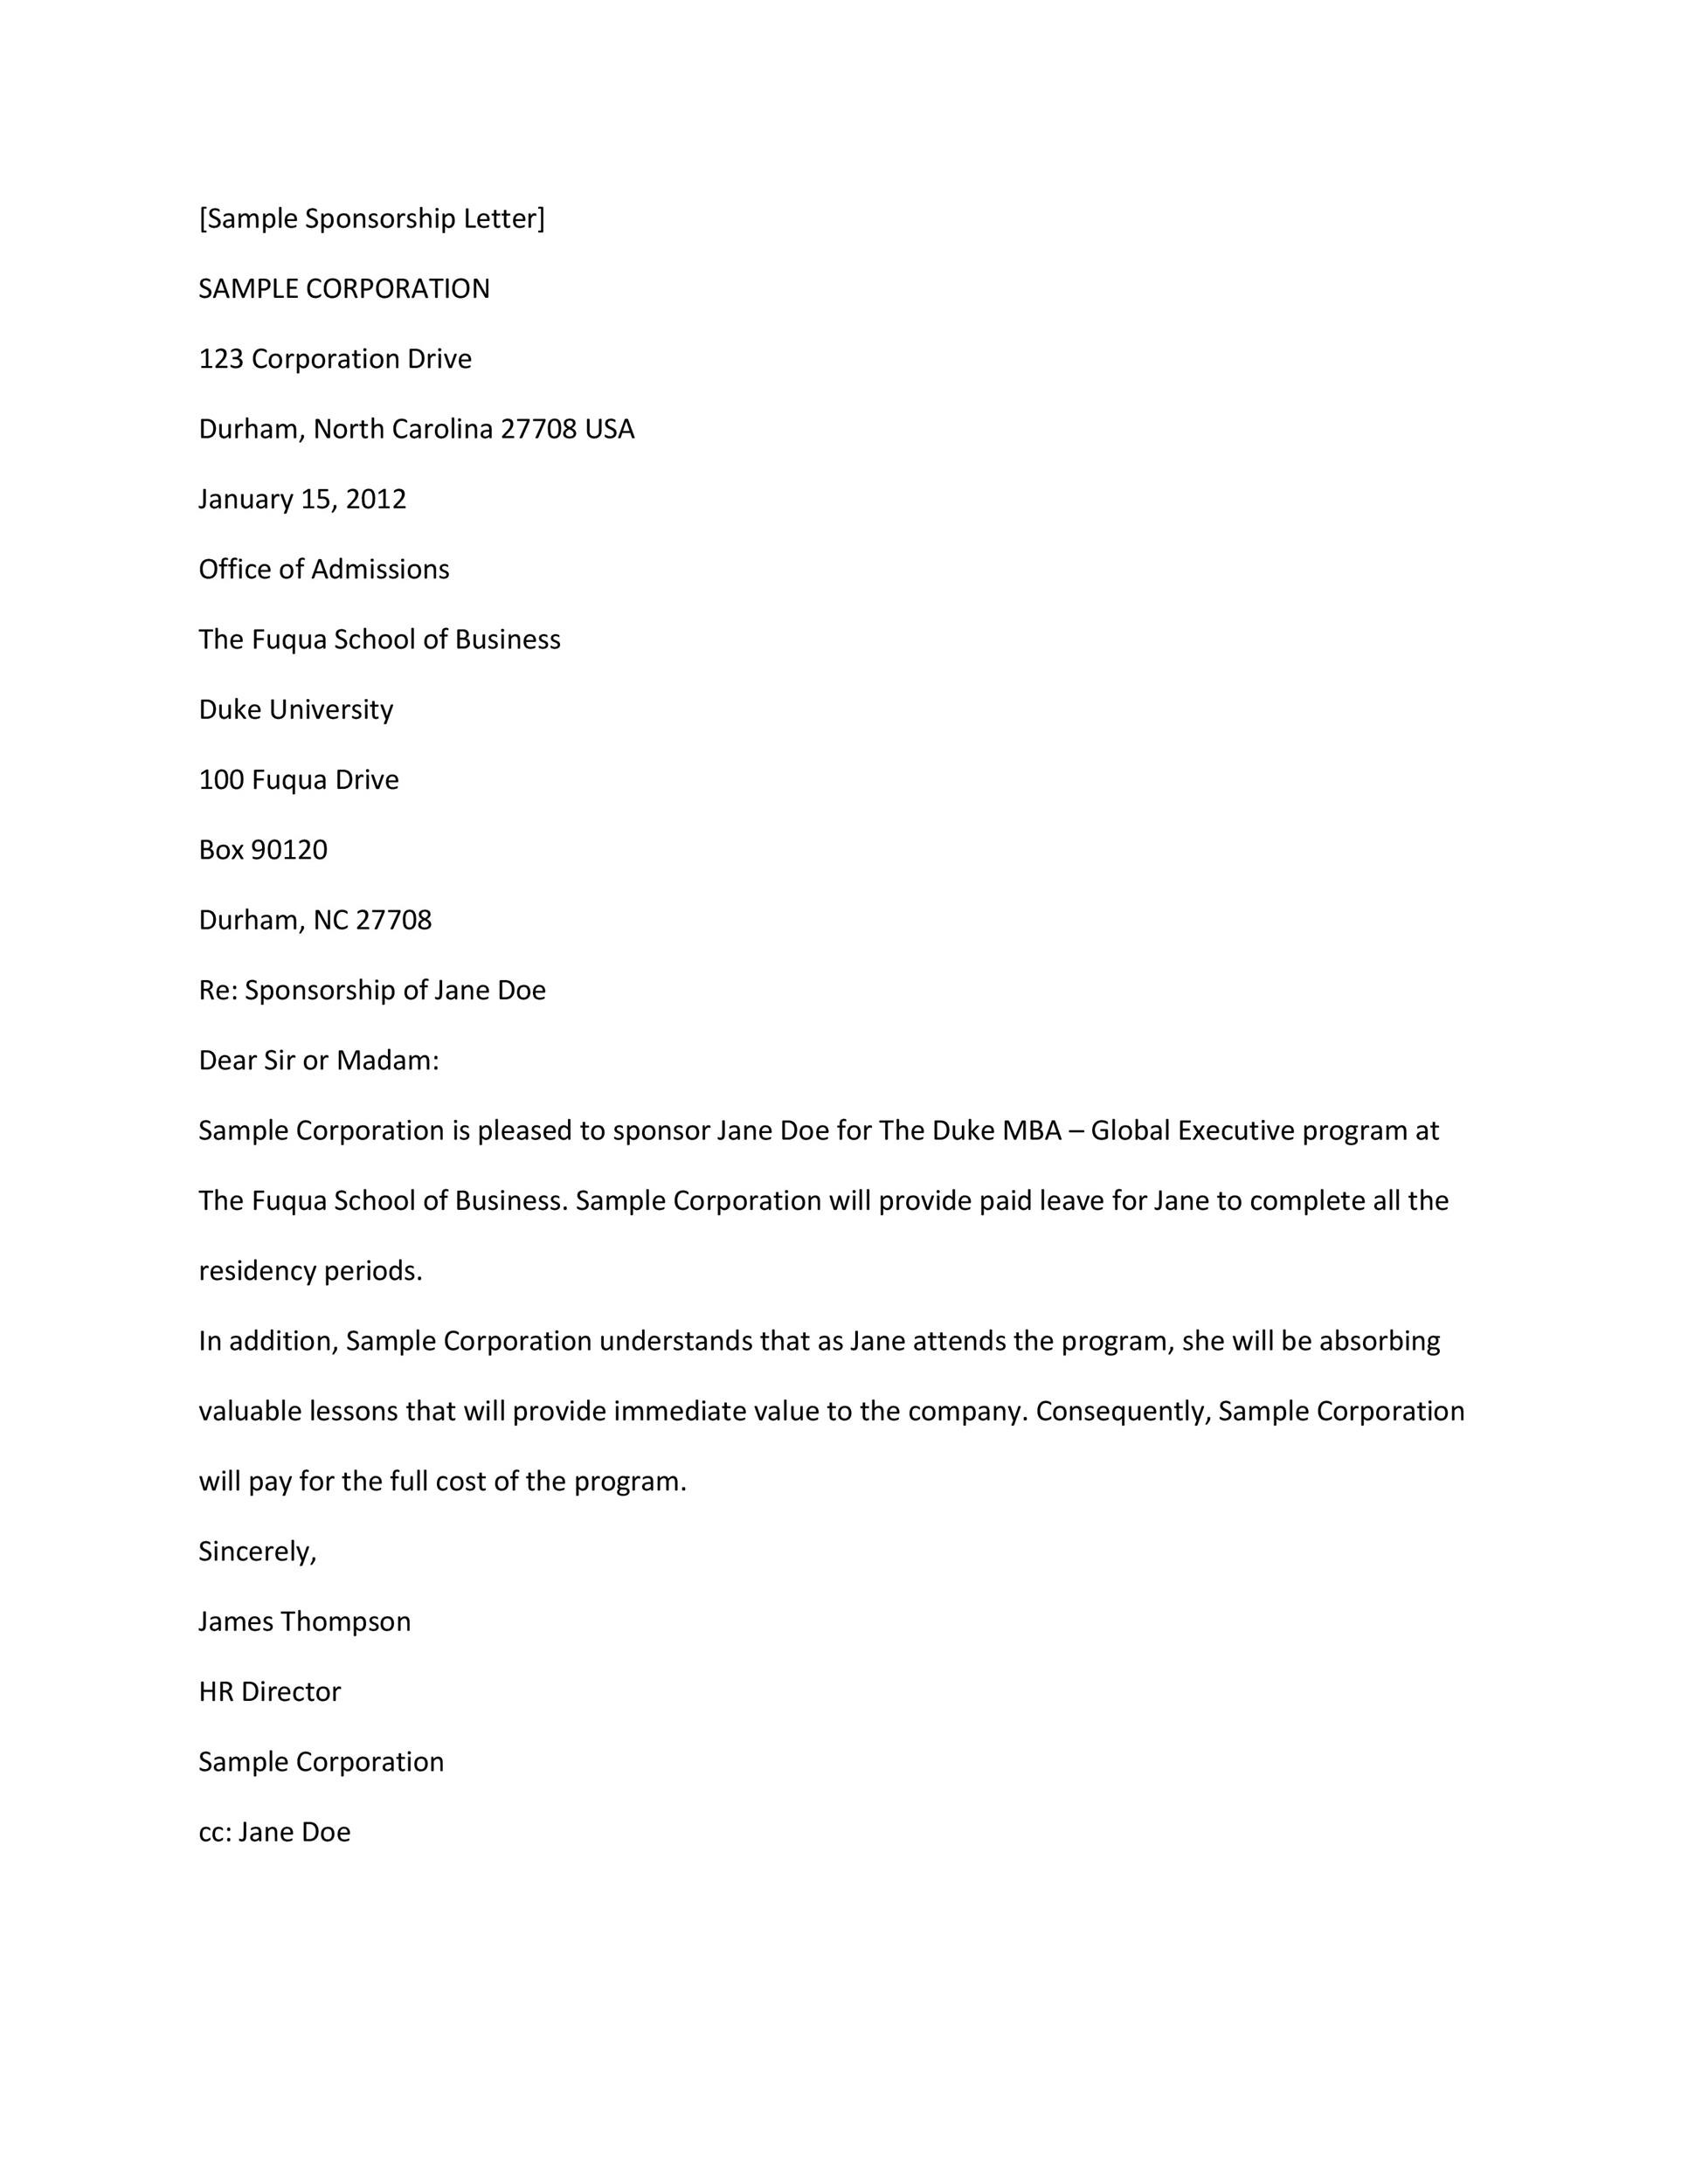 40 Sponsorship Letter Sponsorship Proposal Templates – Application for Sponsorship Template